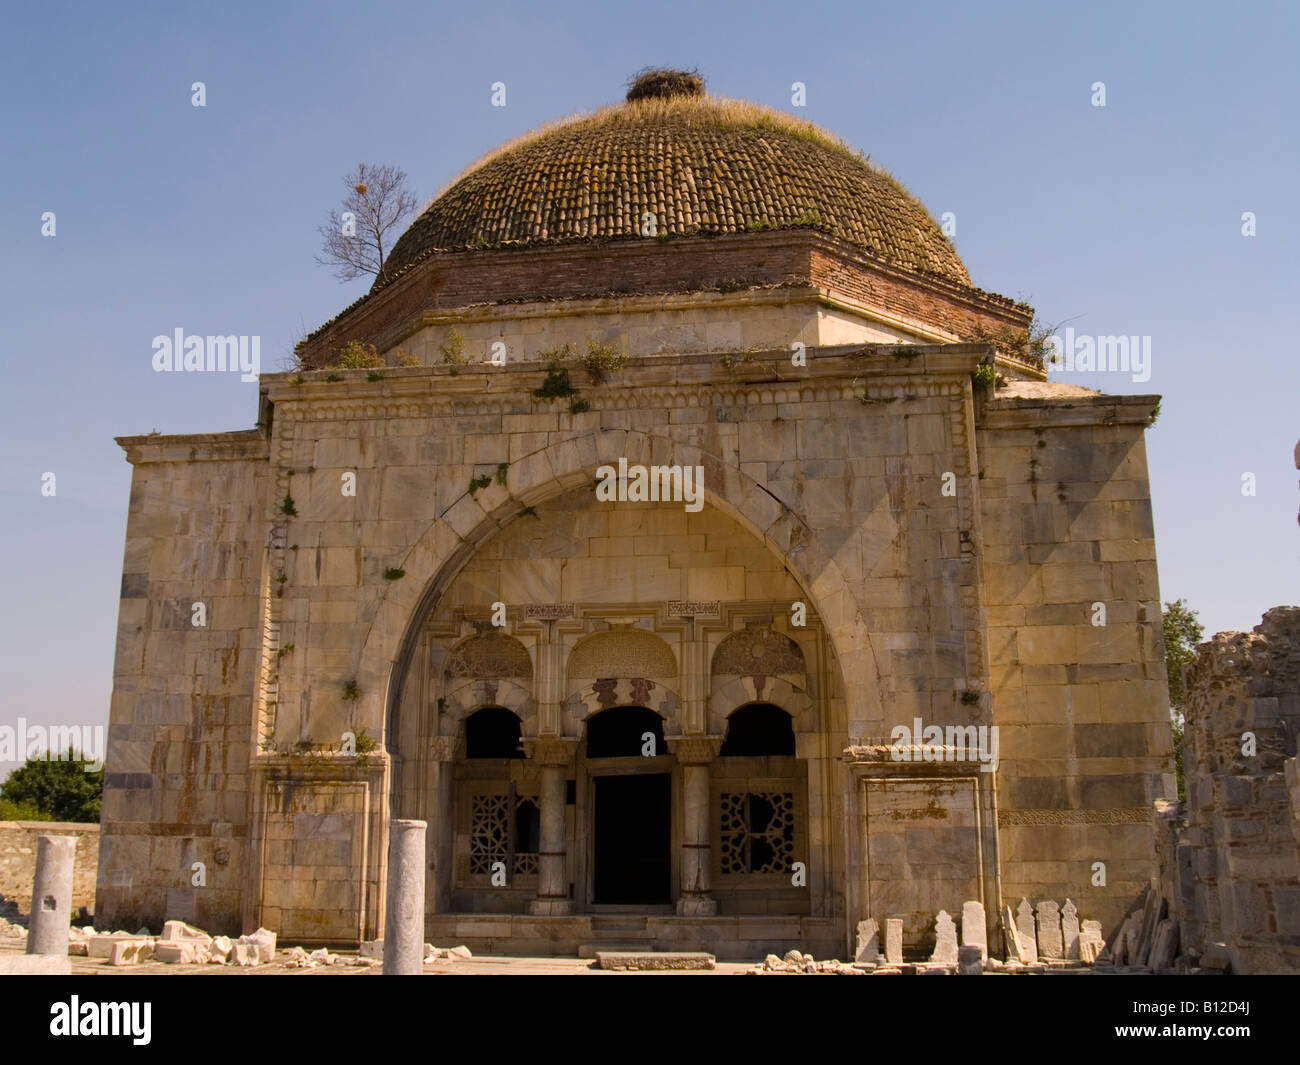 Ilyas Bey 15th Century Mosque, Miletos / Balat, Turkey - Stock Image